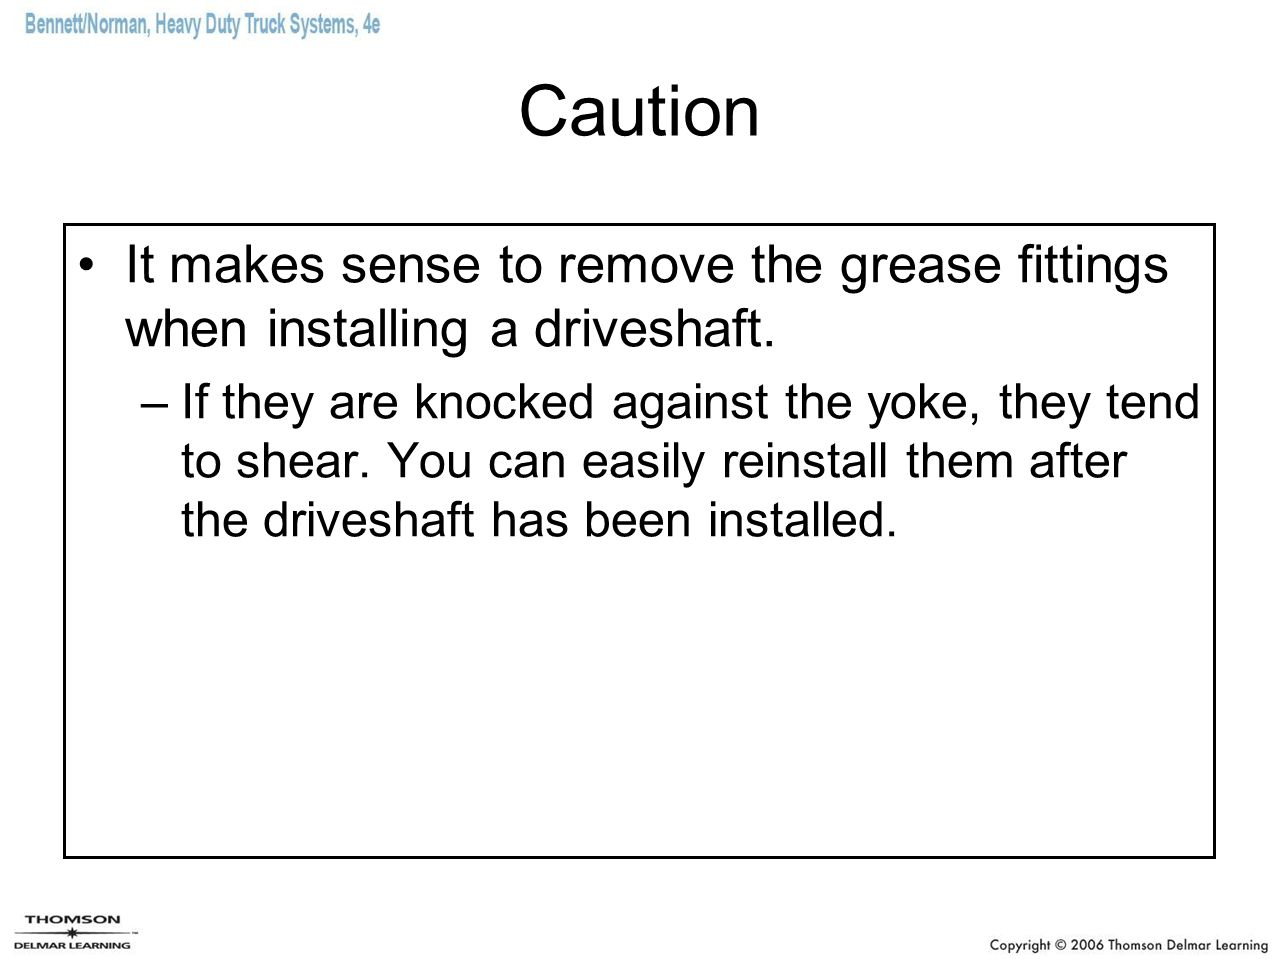 Caution It makes sense to remove the grease fittings when installing a driveshaft.